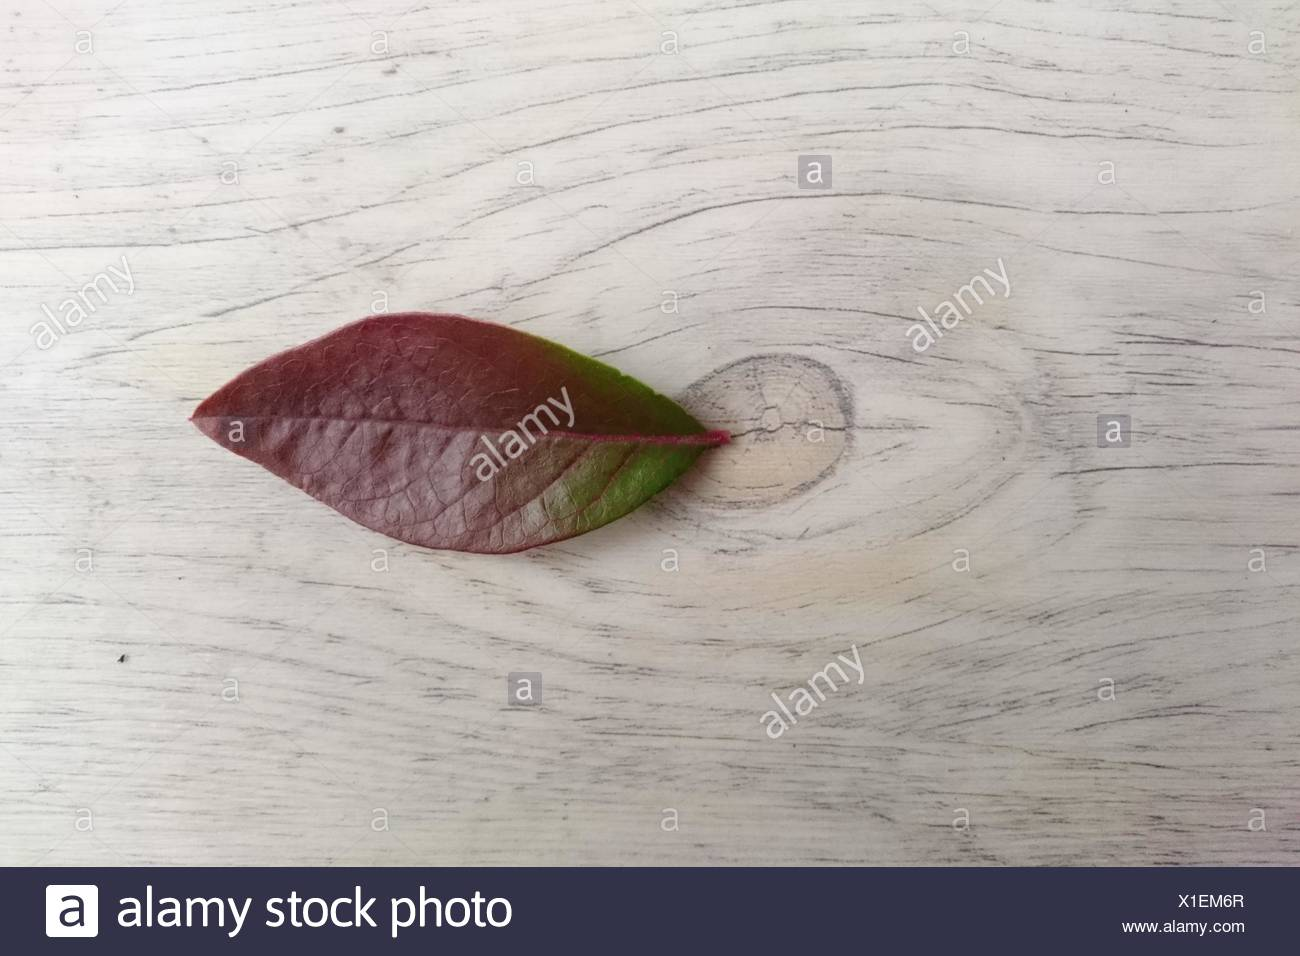 Close-Up Of Leaf On Wooden Table - Stock Image